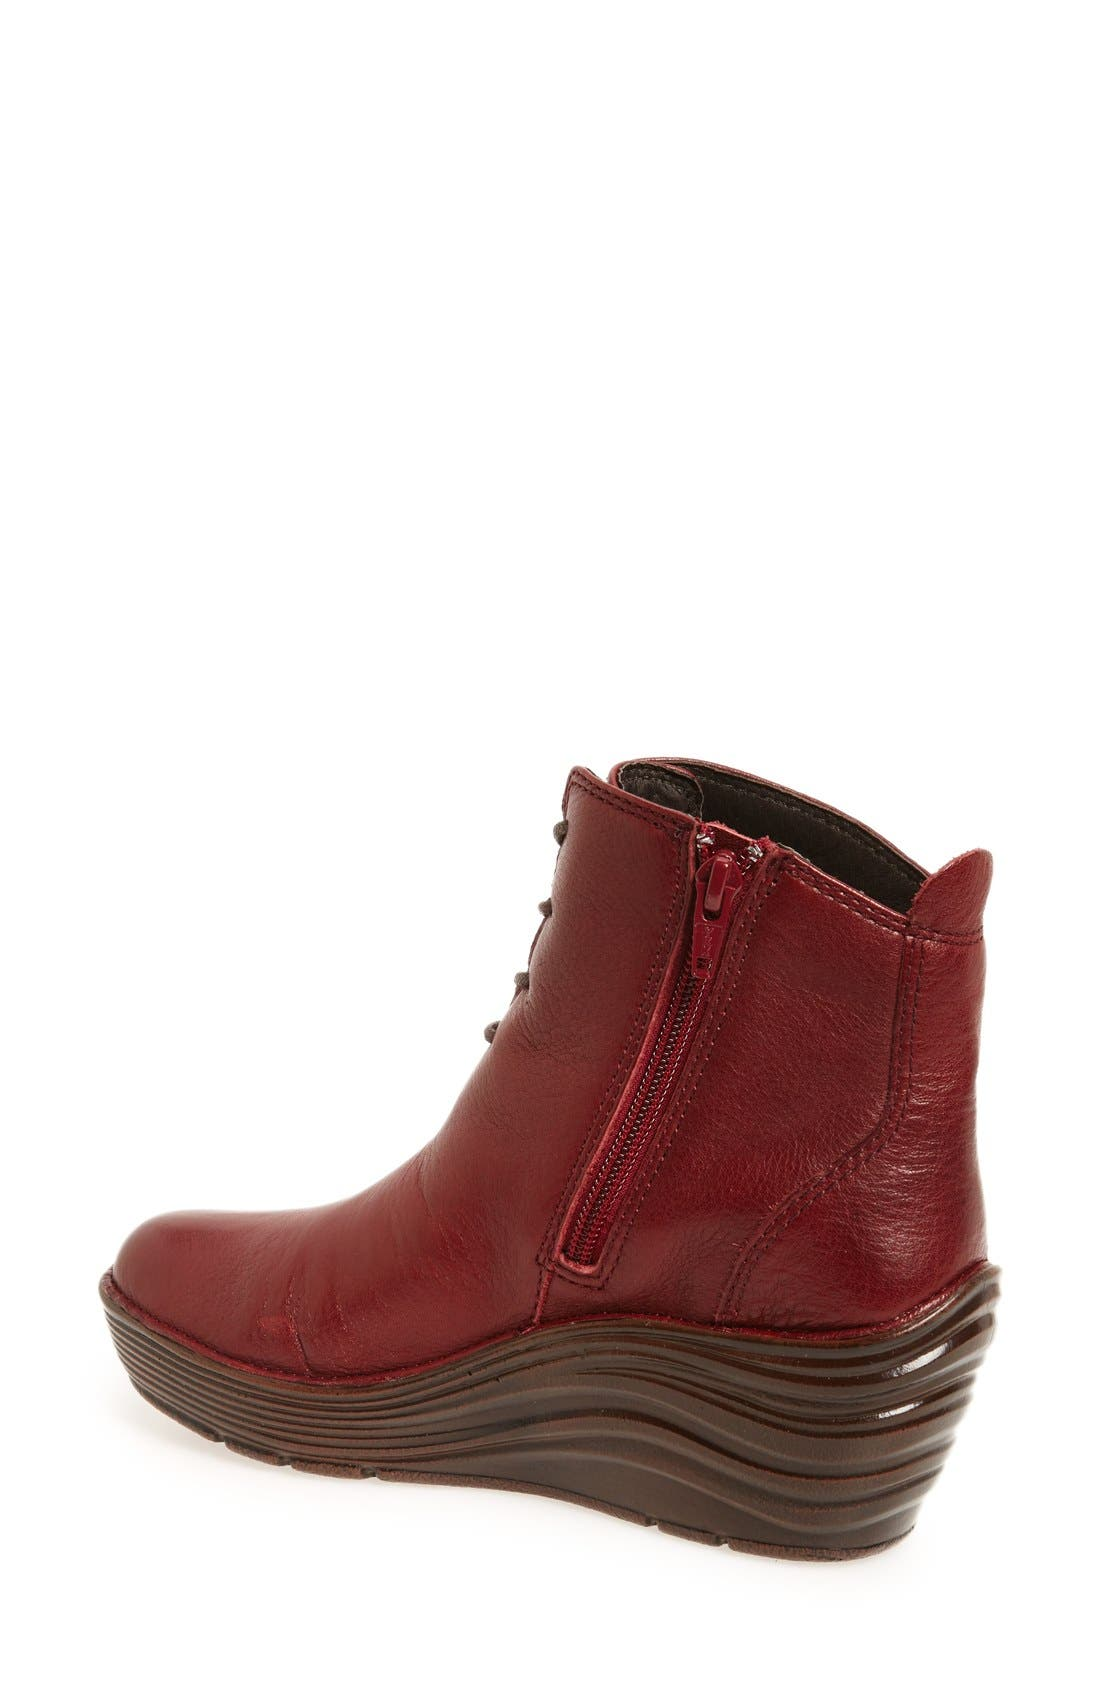 'Corset' Bootie,                             Alternate thumbnail 2, color,                             Russet Red Nubuck Leather